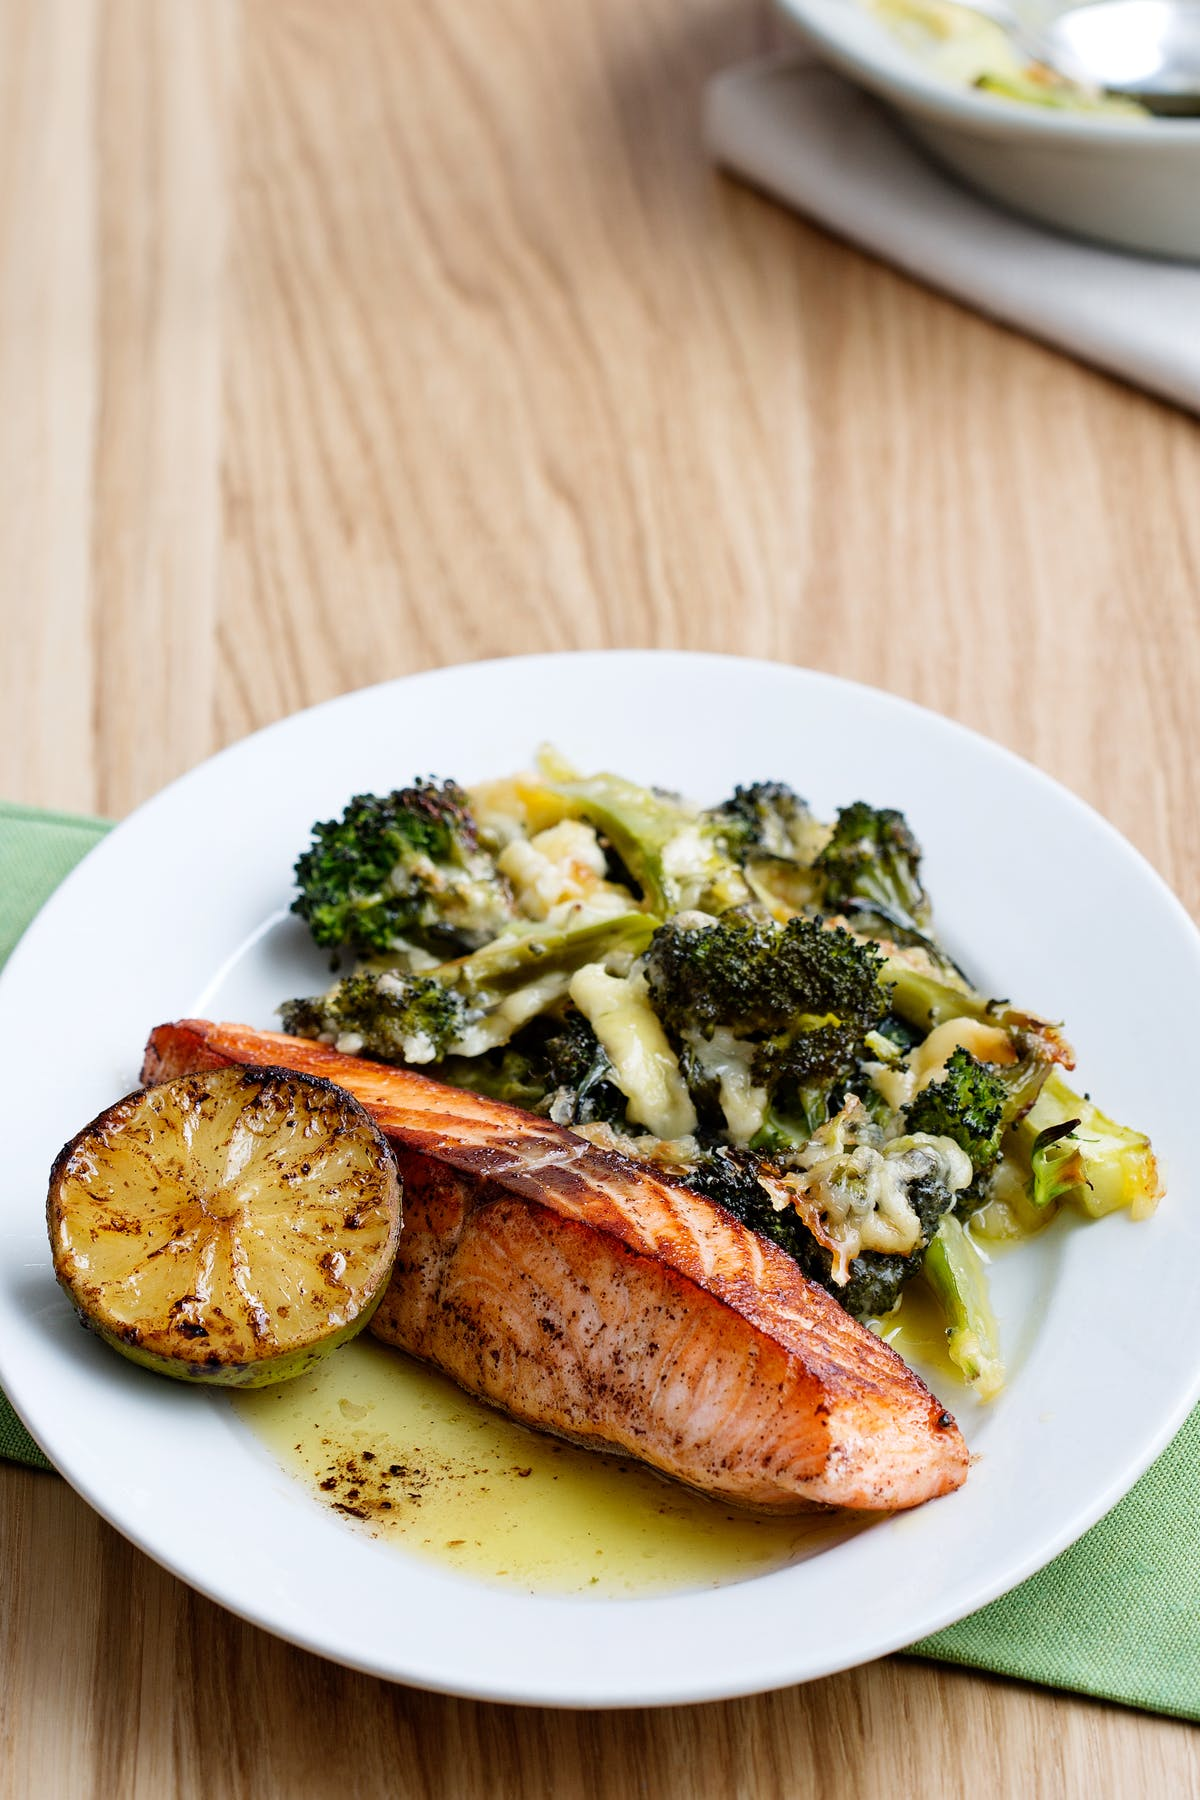 Keto Fried Salmon With Broccoli And Cheese